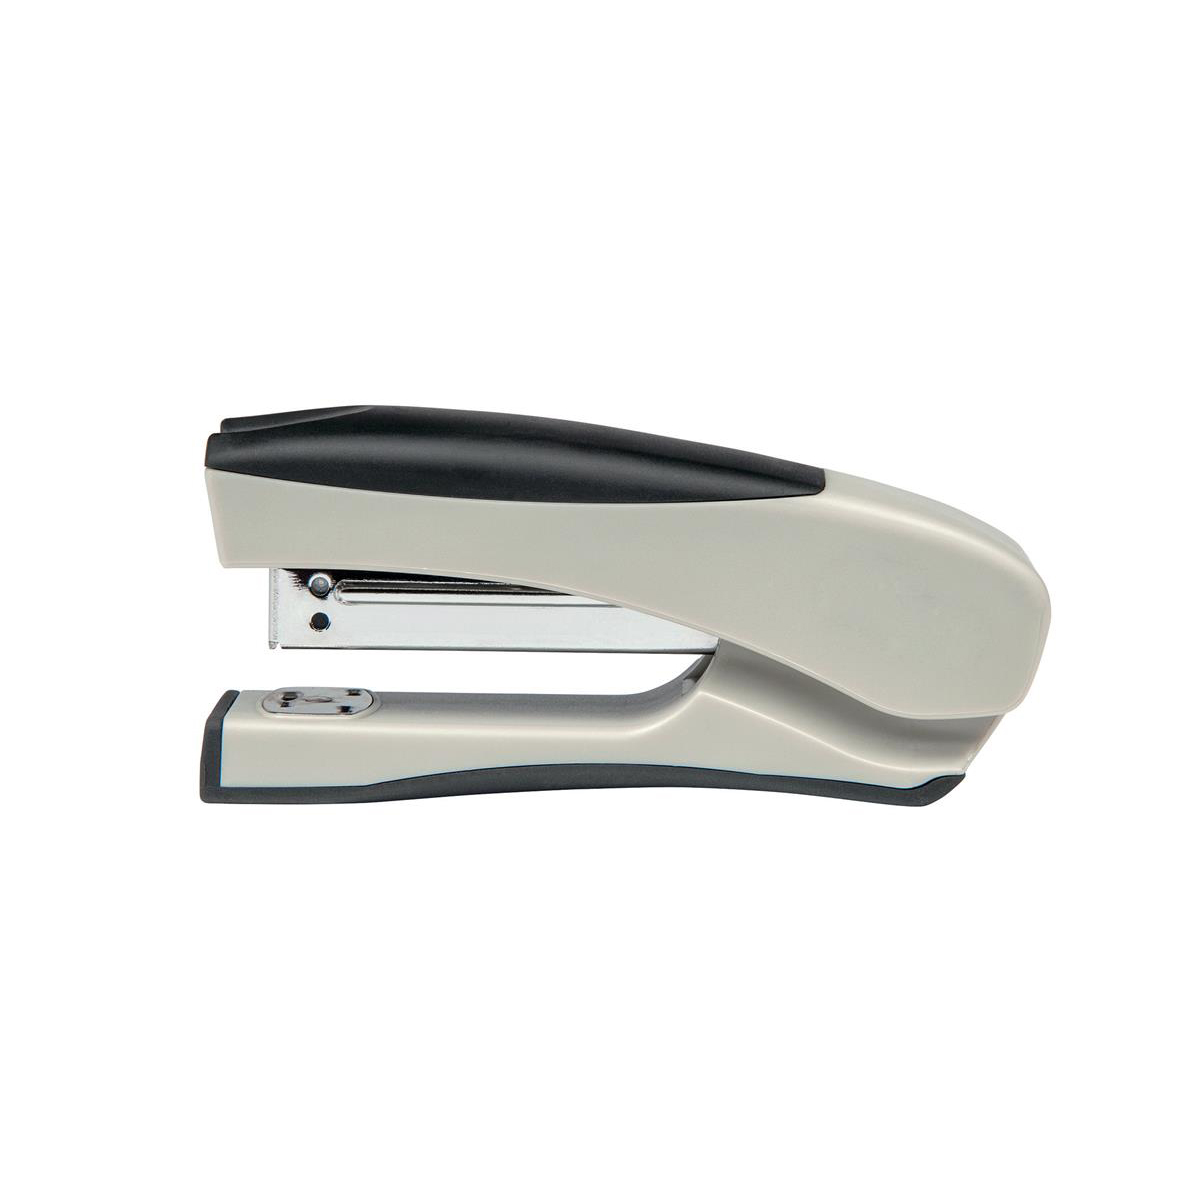 Long Arm Staplers 5 Star Office Half Strip Stand Up Stapler 20 Sheet Capacity Takes 26/6 and 24/6 Staples Black/Grey